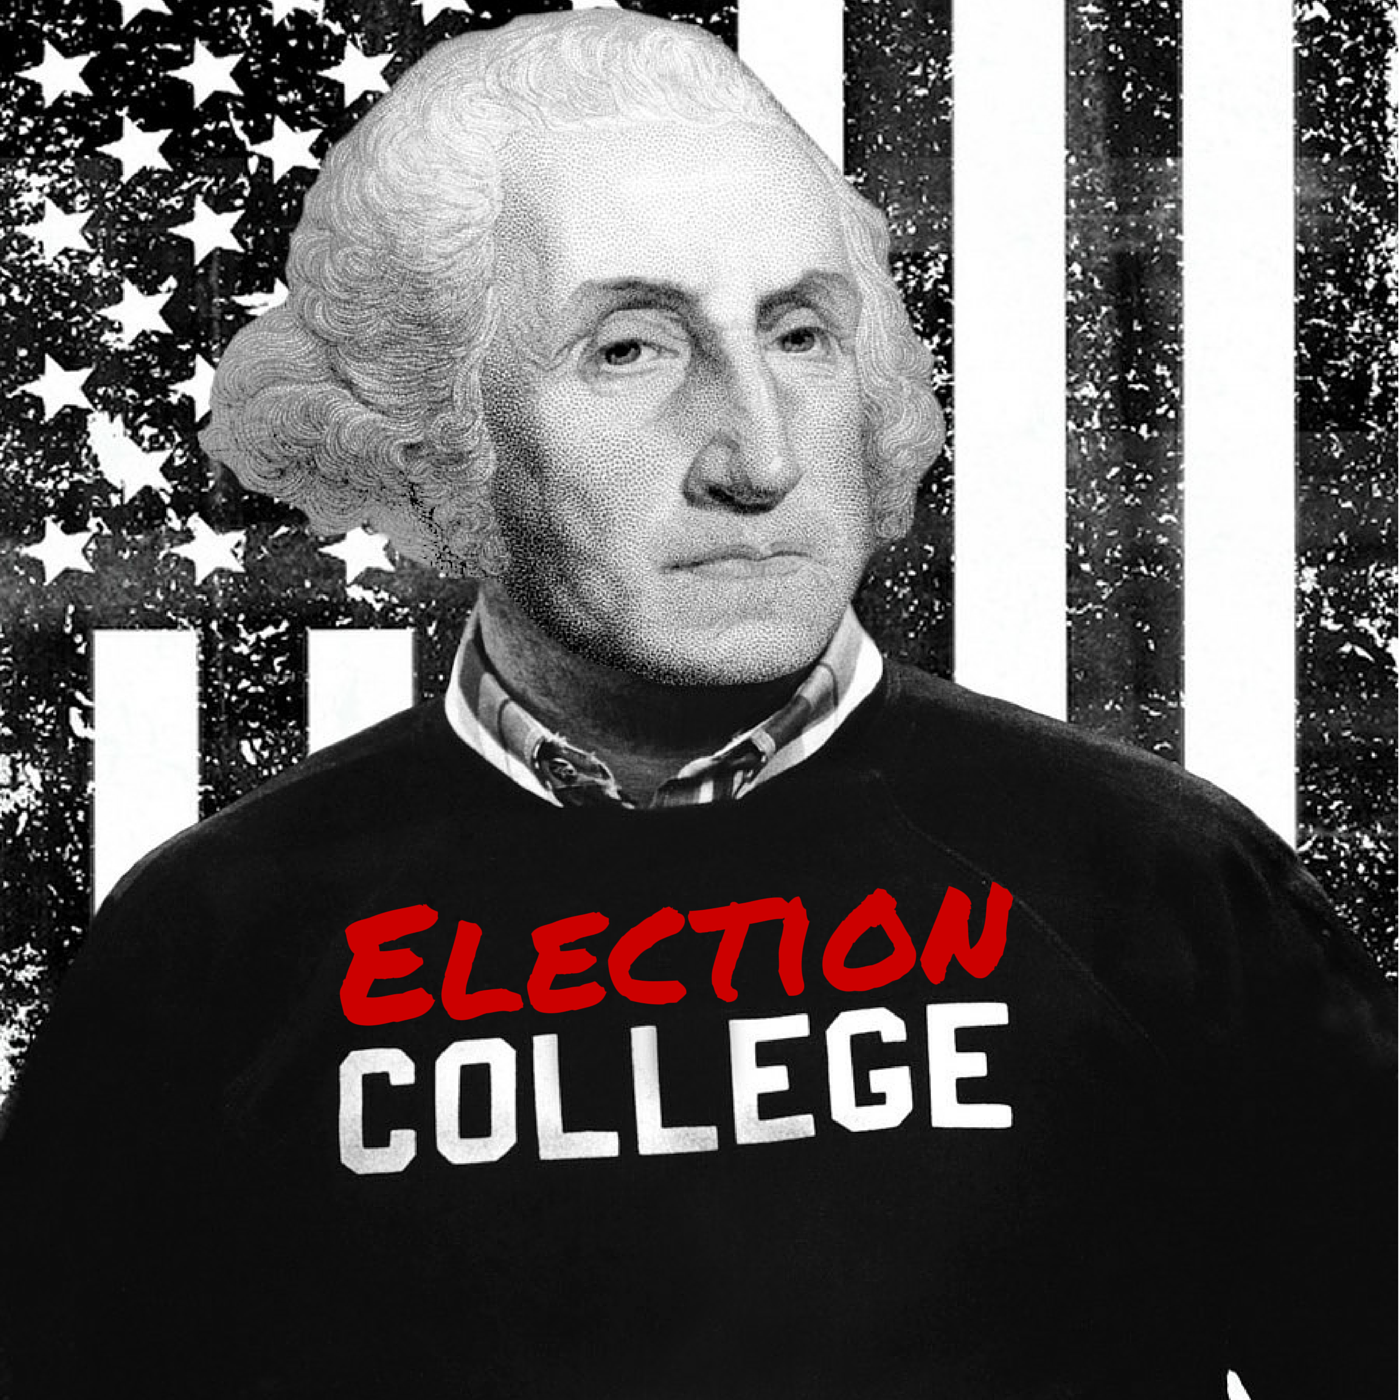 Eliza Johnson | Episode #242 | Election College: United States Presidential Election History